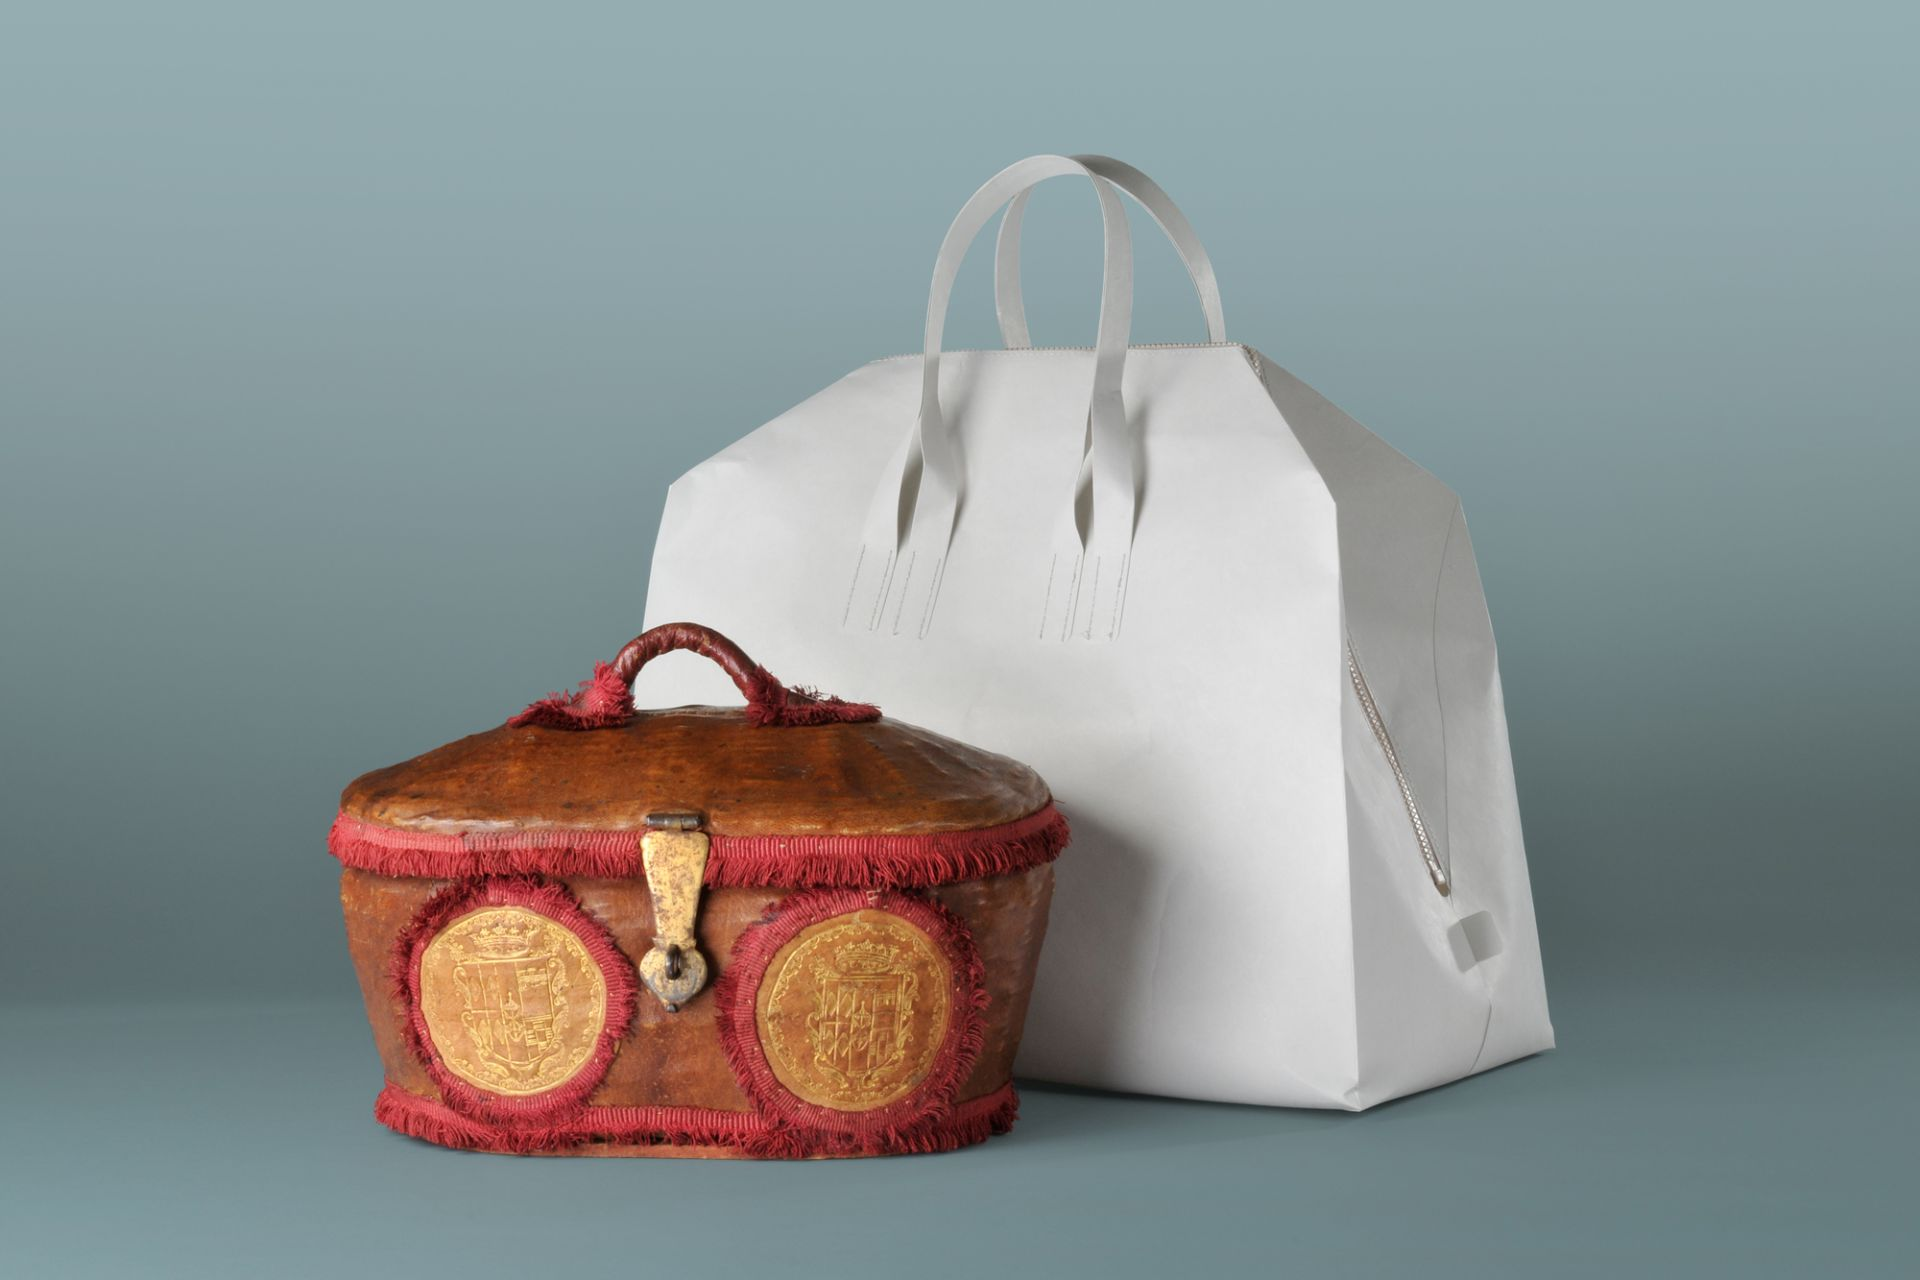 Travel basket Pope Clemens IX, Rome, 17th century and off white PAPIER 135g, travel bag, Saskia and Stefan Diez, Germany, 2010